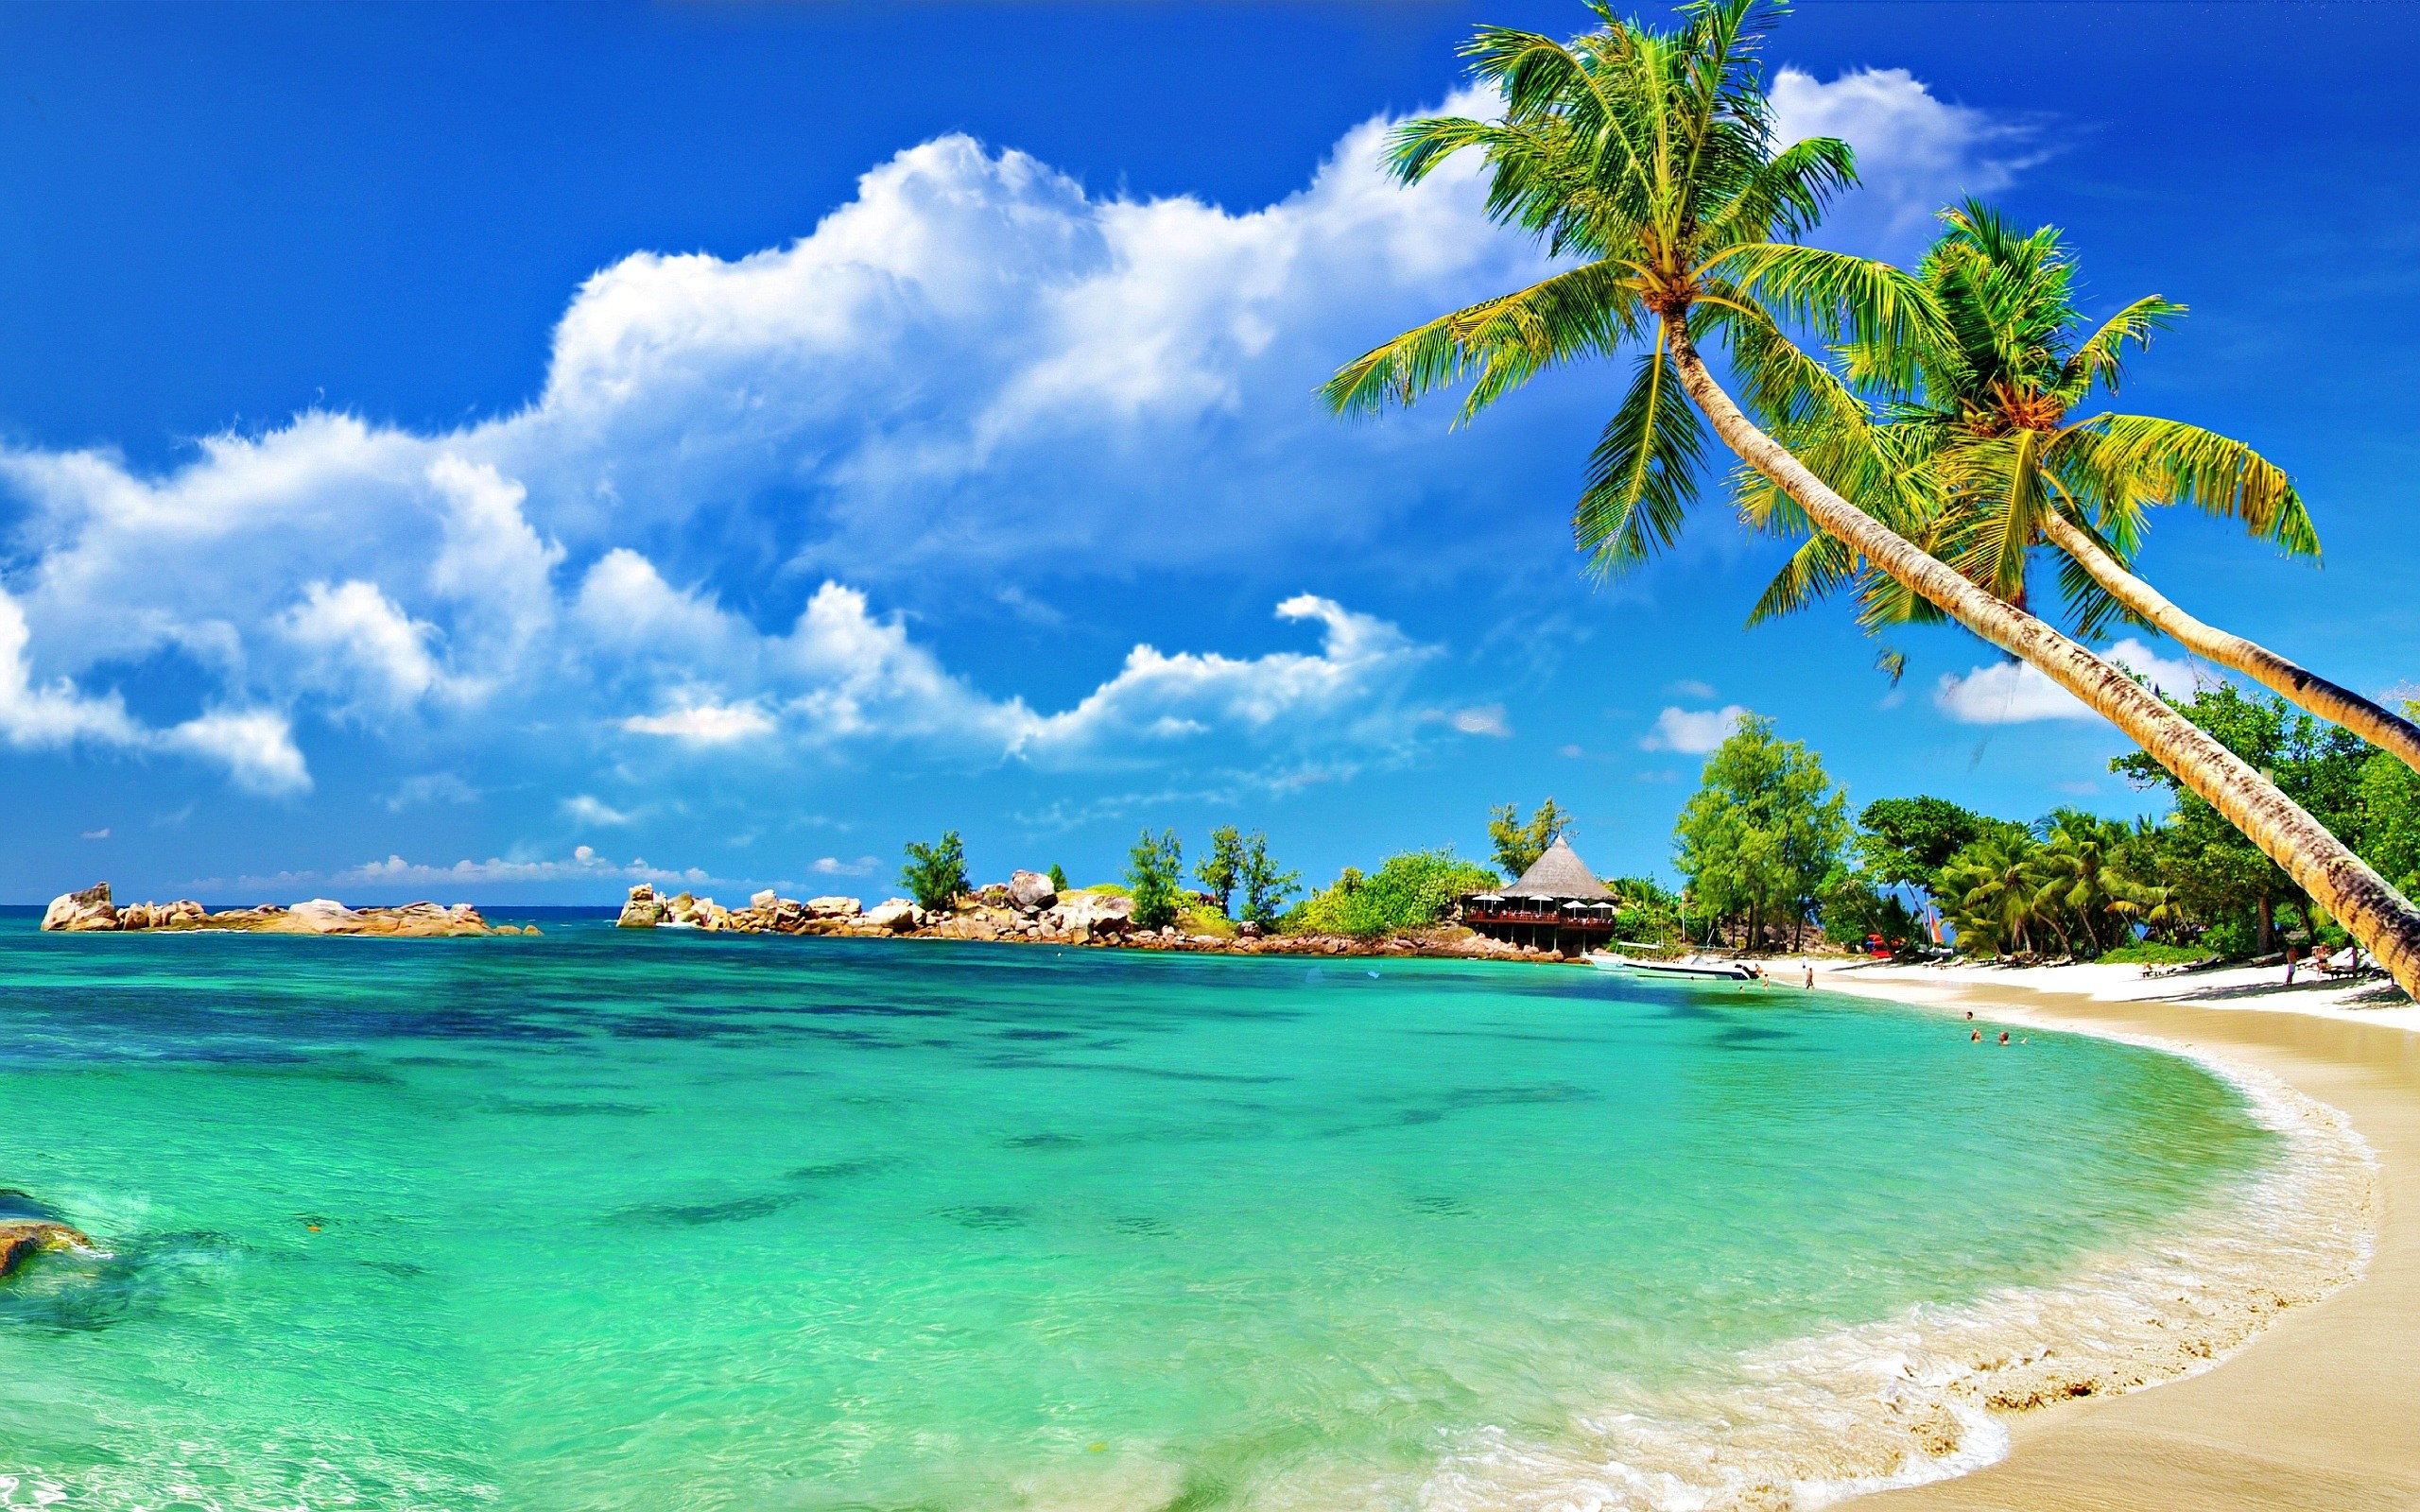 hd beach wallpaper ·① download free amazing backgrounds for desktop